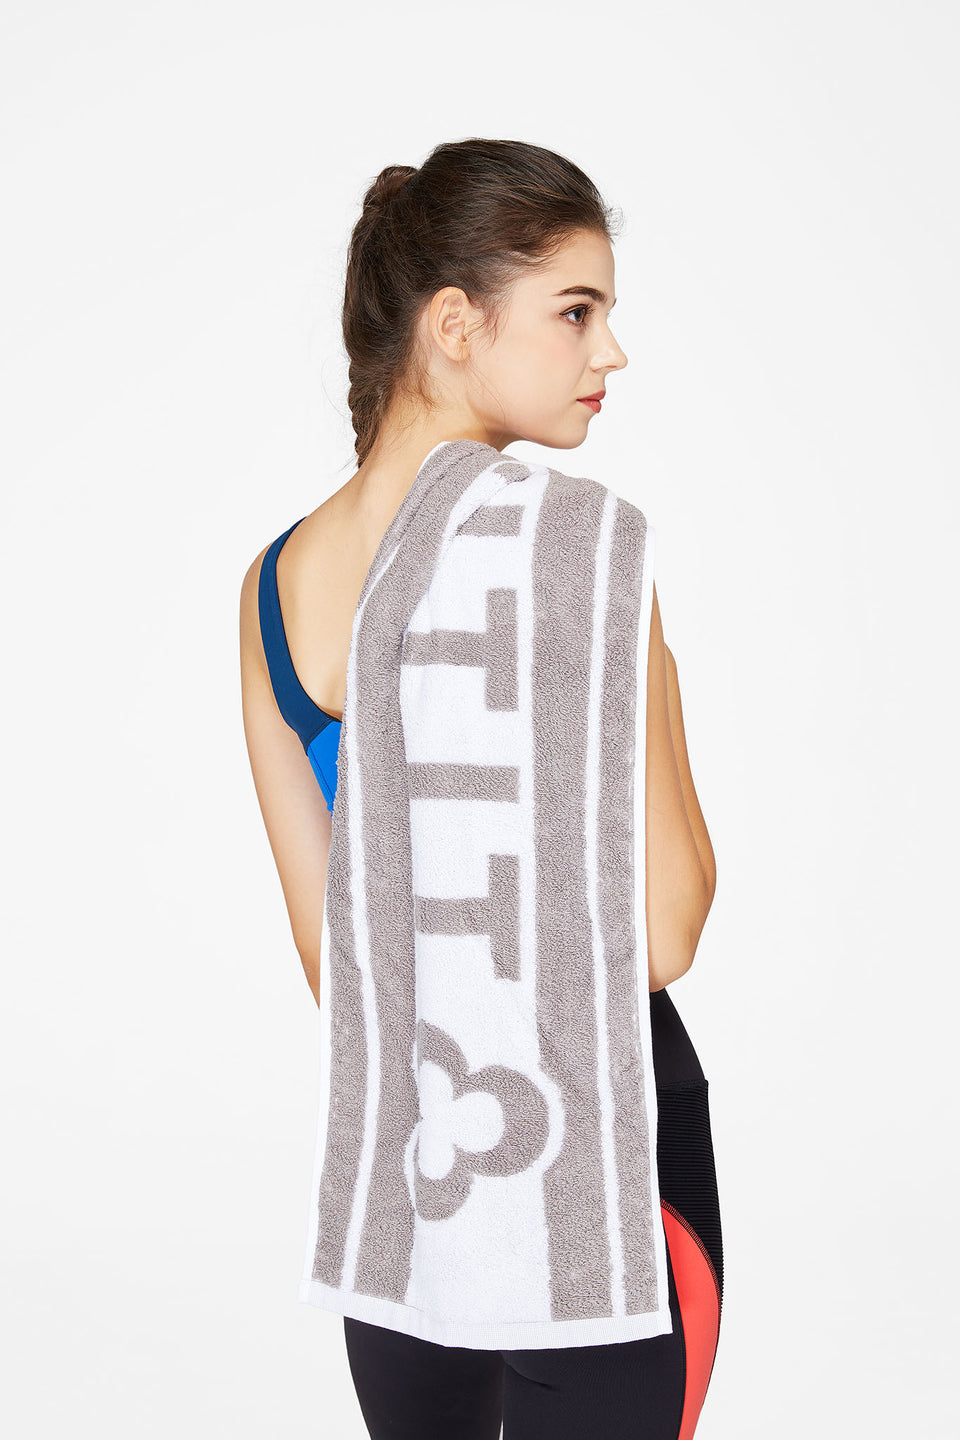 TITIKA Gym Towel